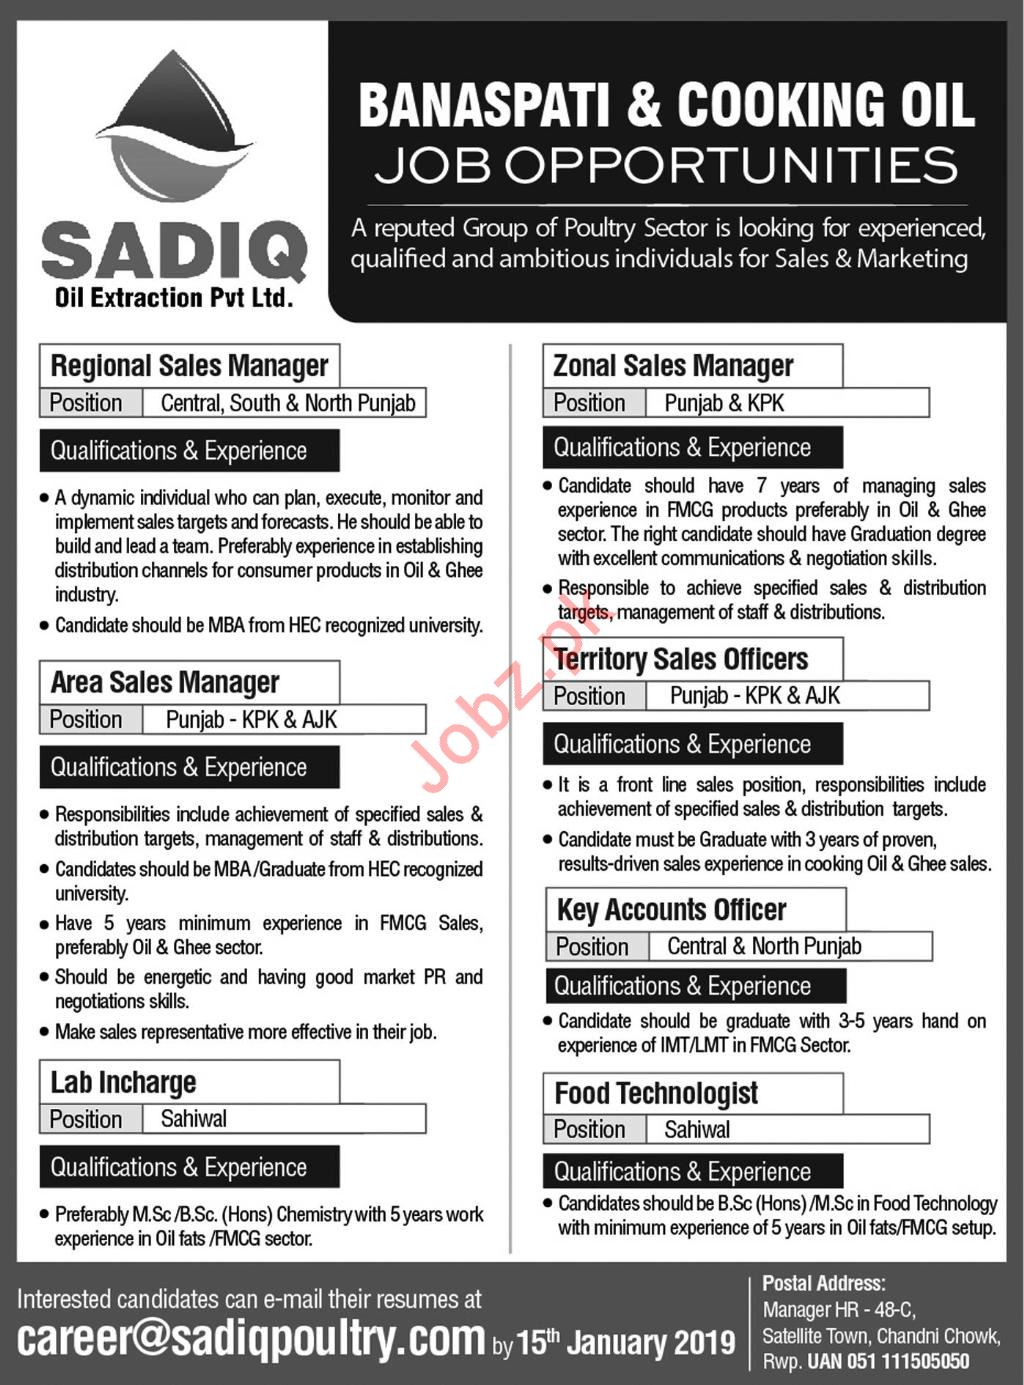 Sadiq Oil Extraction Pvt Limited Jobs 2019